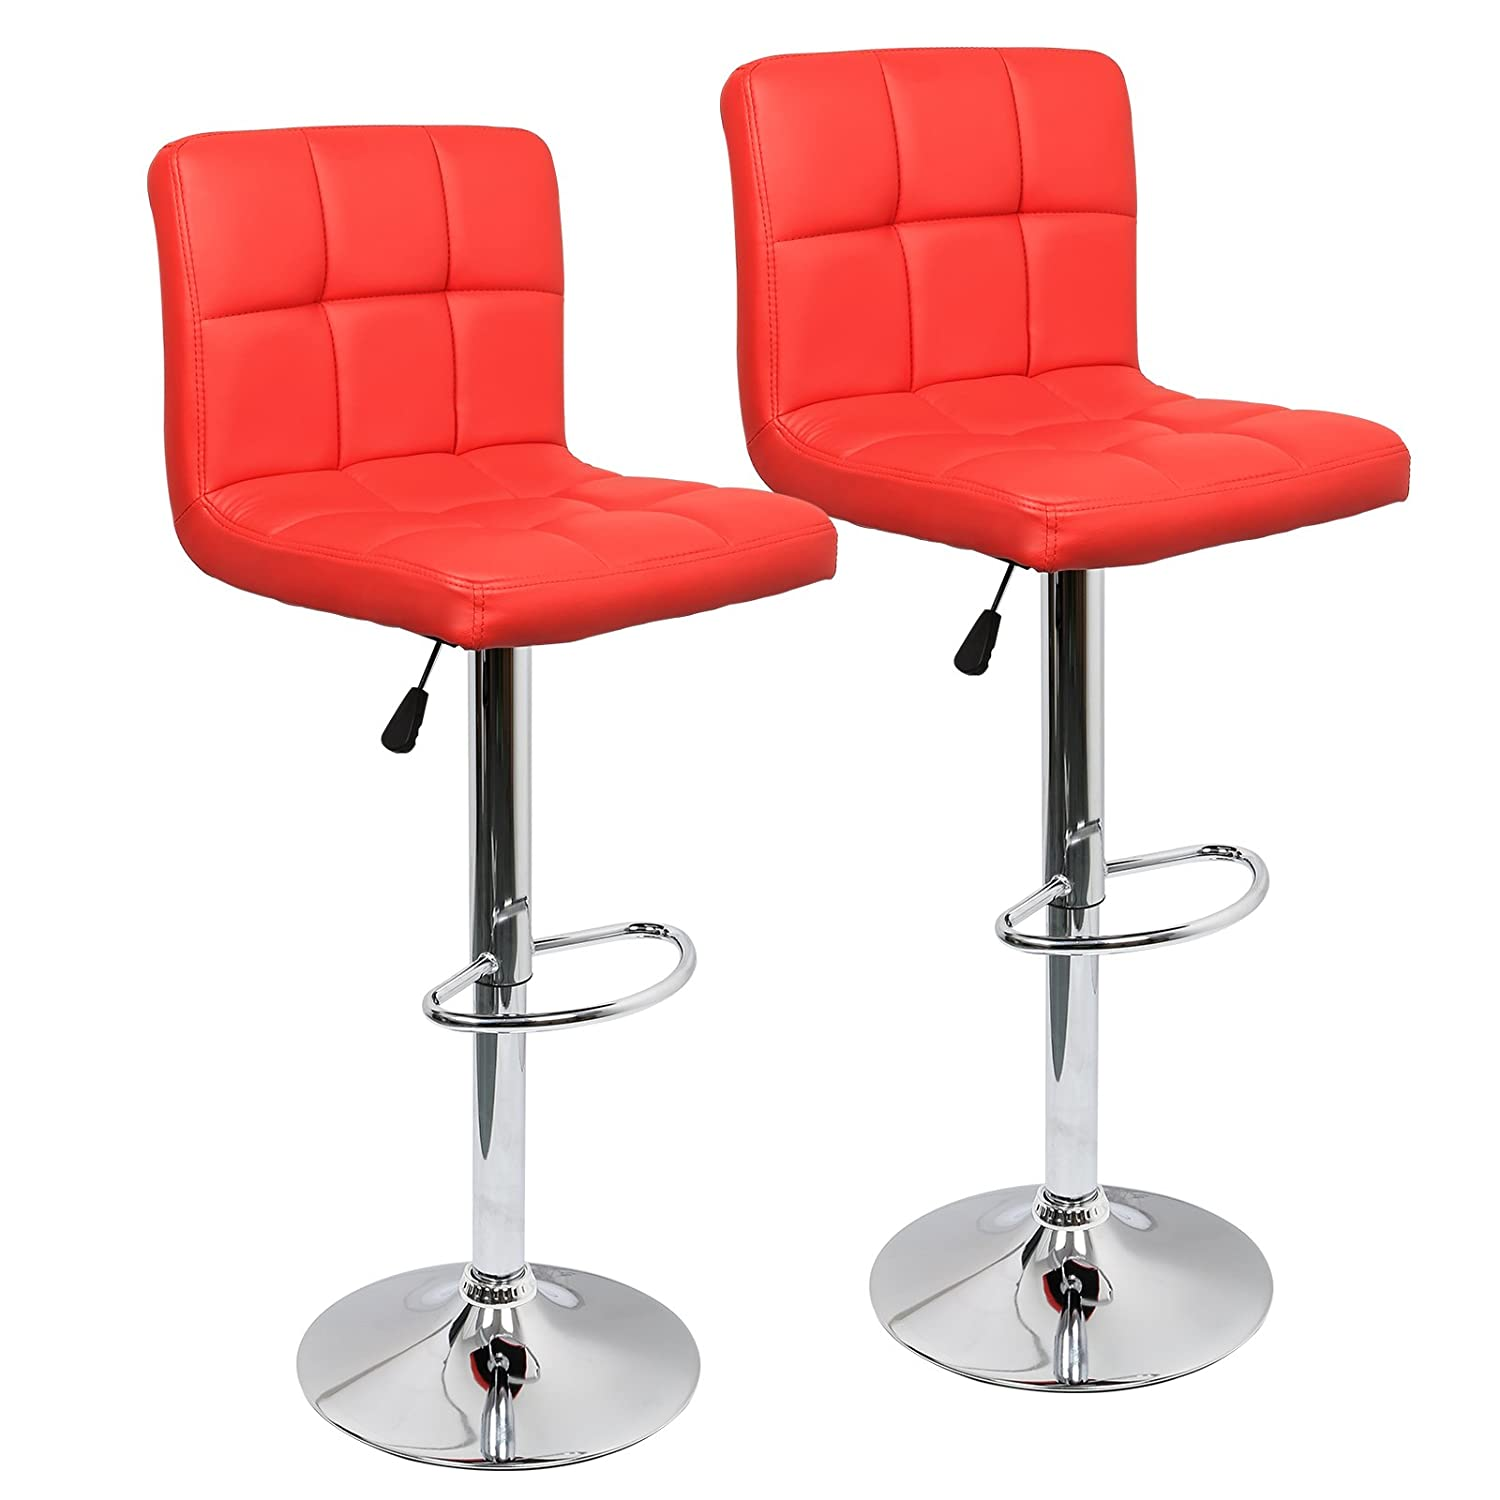 IntimaTe WM Heart Adjustable Swivel Bar Stools Set Of 2, Faux Leather Gas Lift Modern Square Kitchen Chairs With Back (Red)